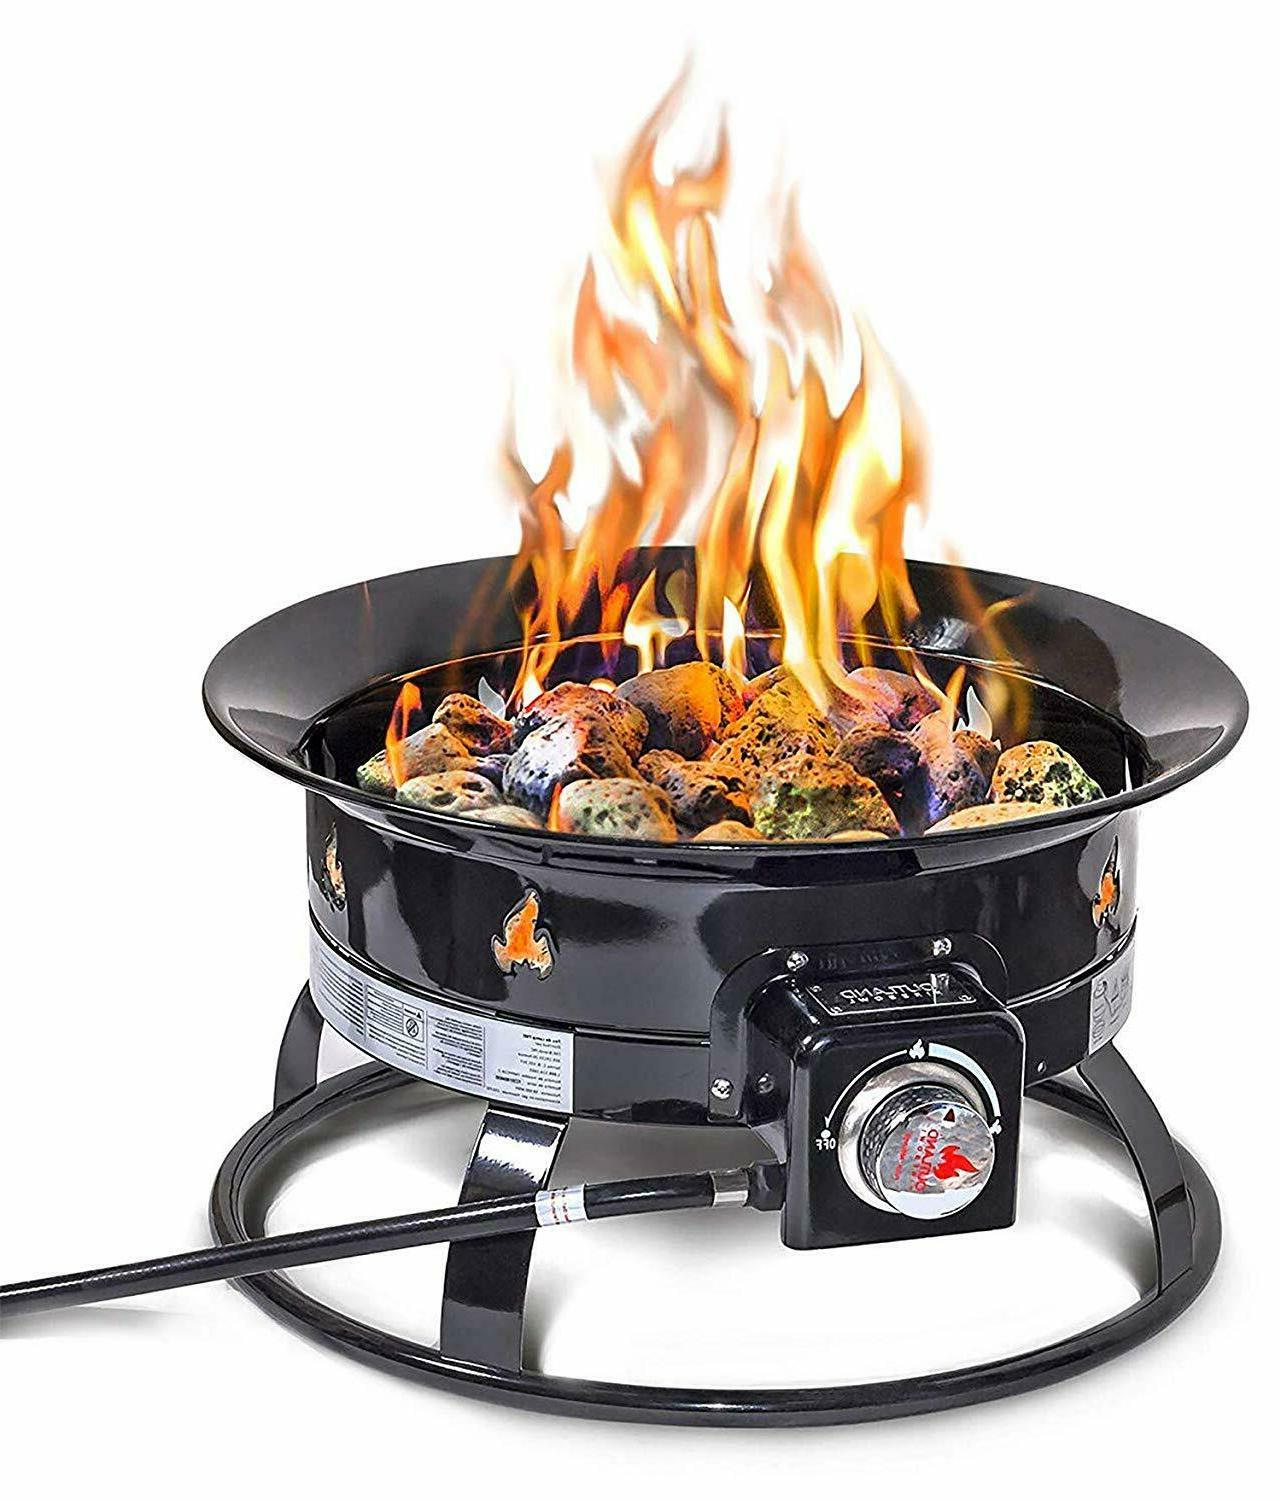 Outland Firebowl Outdoor Portable Propane Gas Fire Pit on Outland Gas Fire Pit id=89679